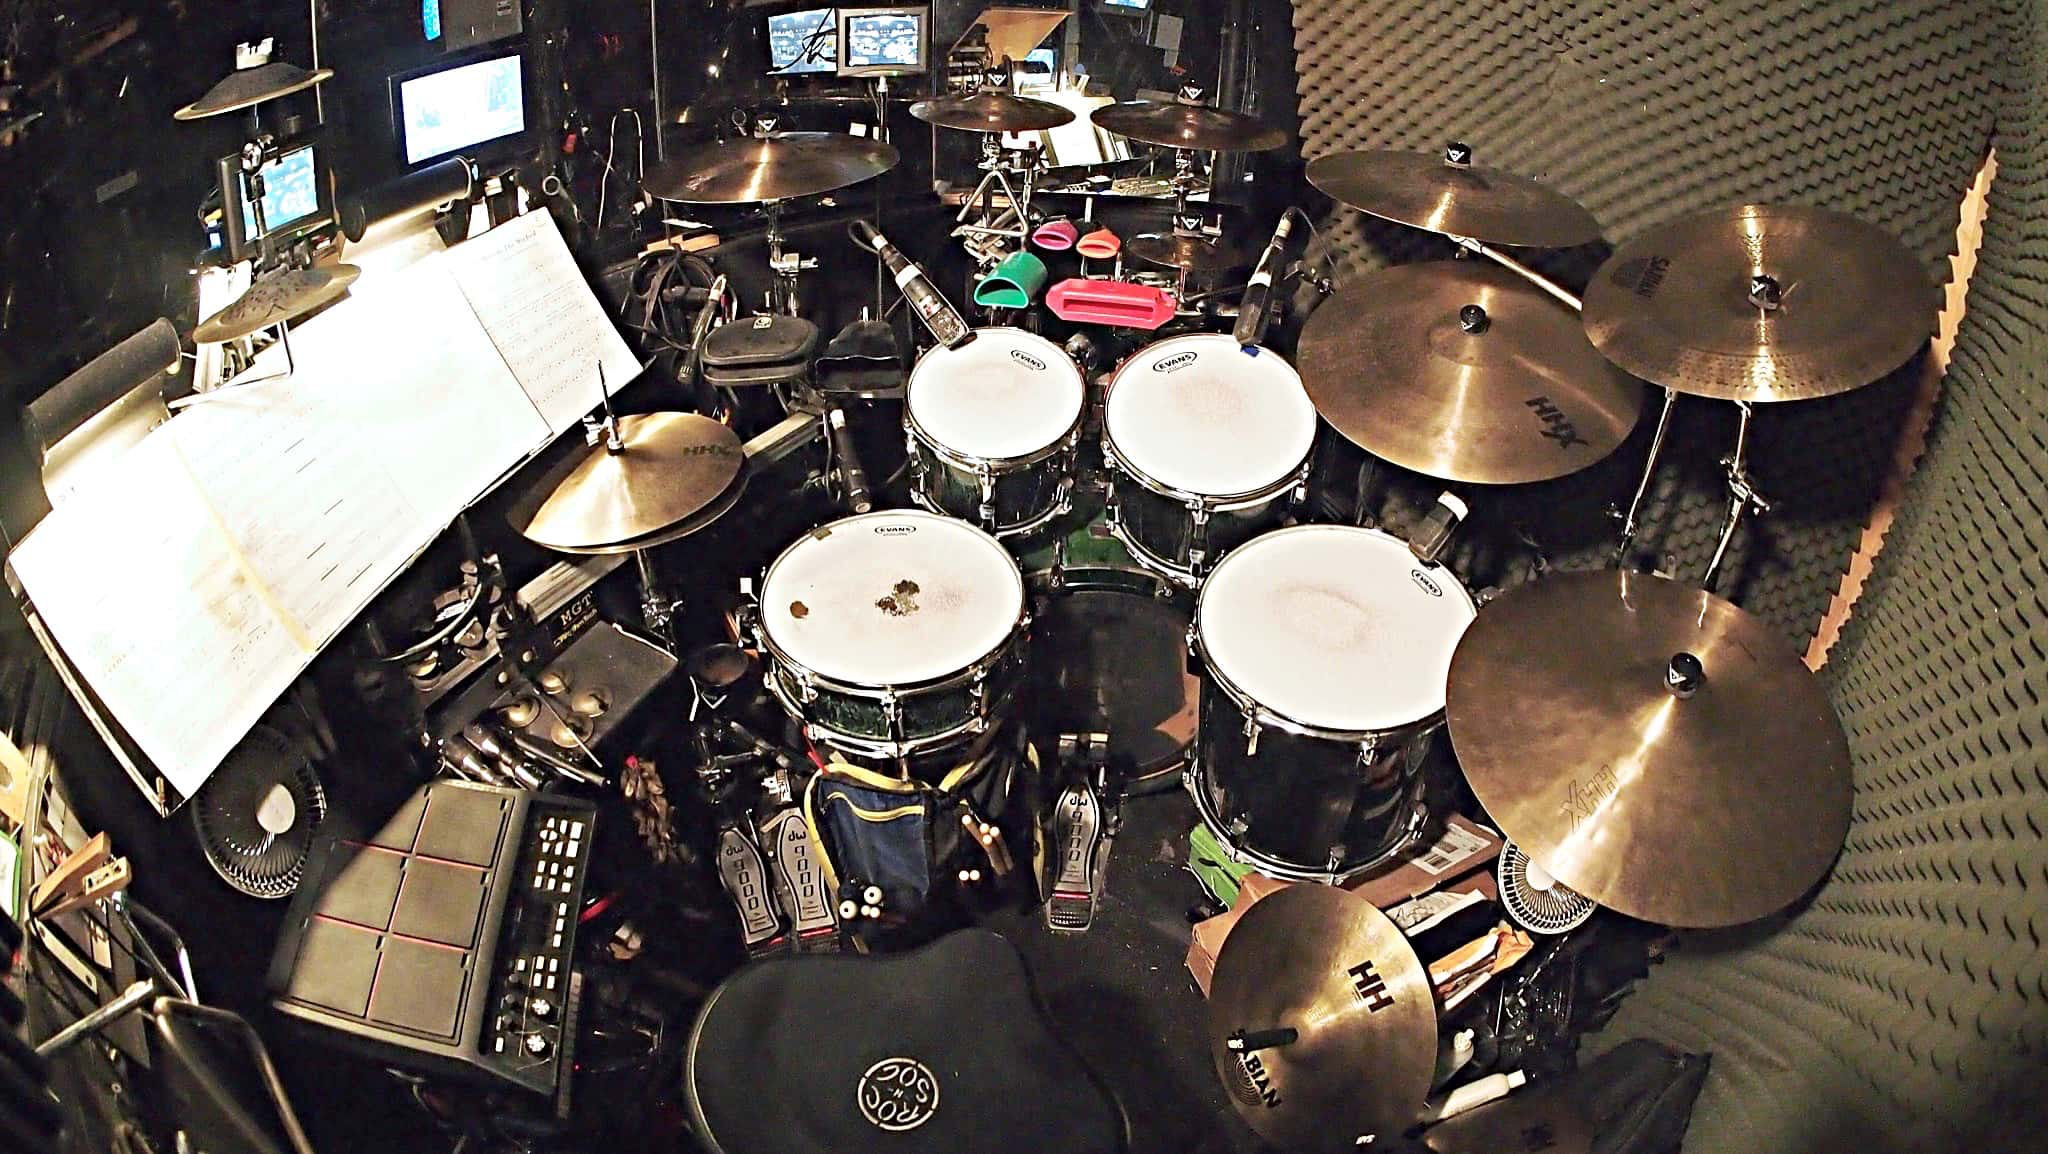 Matt Vander Ende's drum set setup for the currently running Broadway production of Wicked at the Gershwin Theatre.